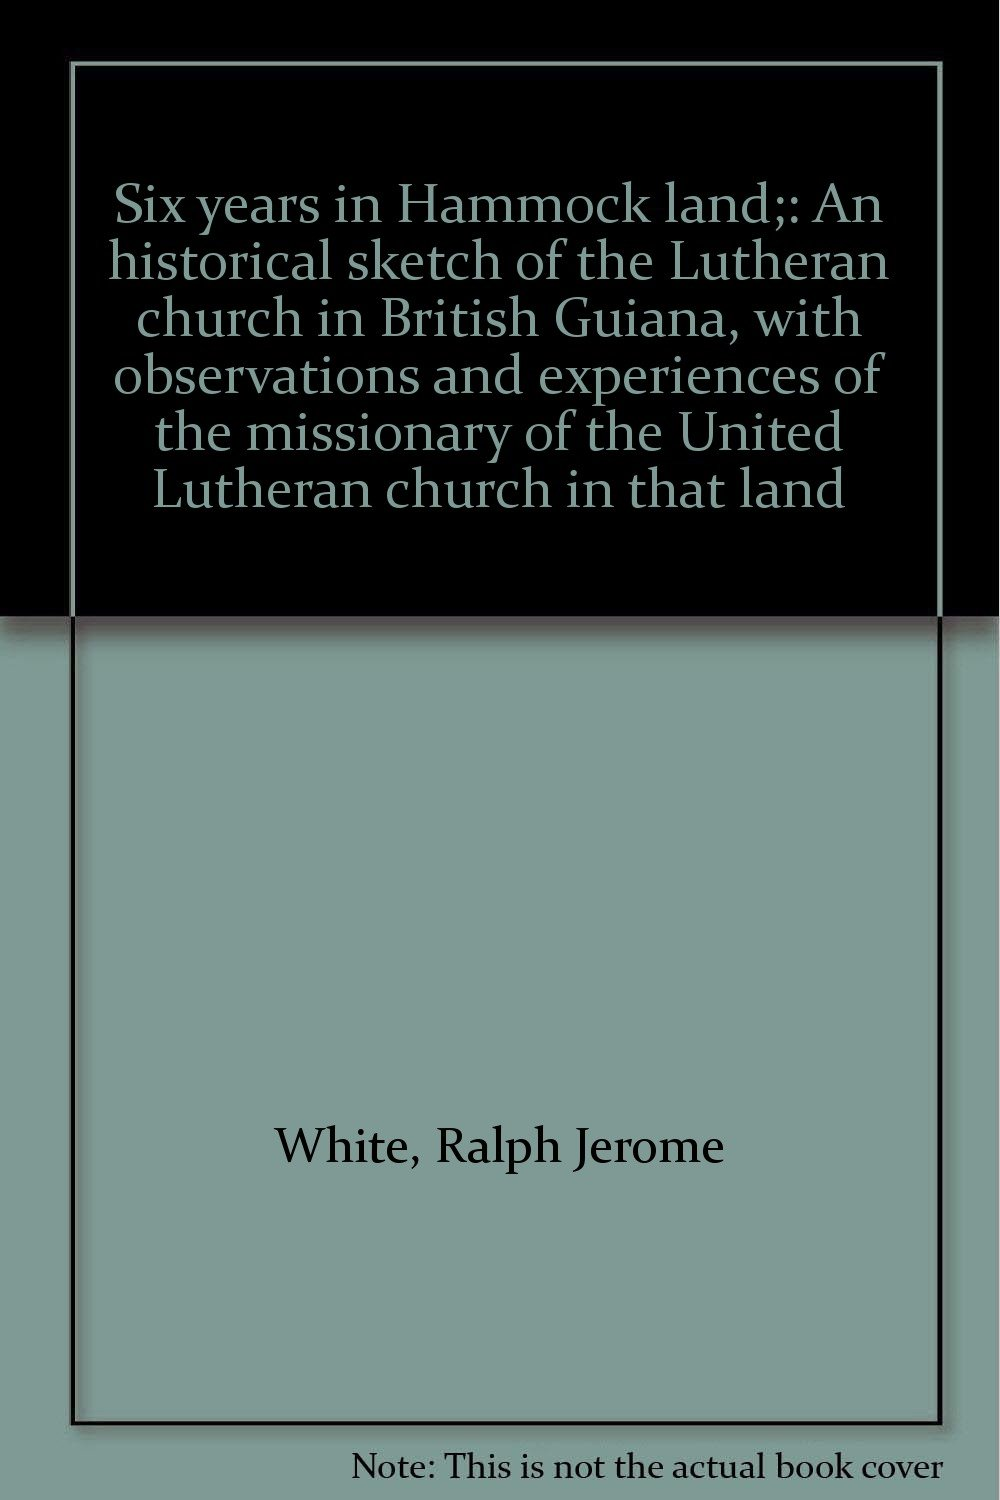 Six years in Hammock land;: An historical sketch of the Lutheran church in British Guiana, with observations and experiences of the missionary of the United Lutheran church in that land